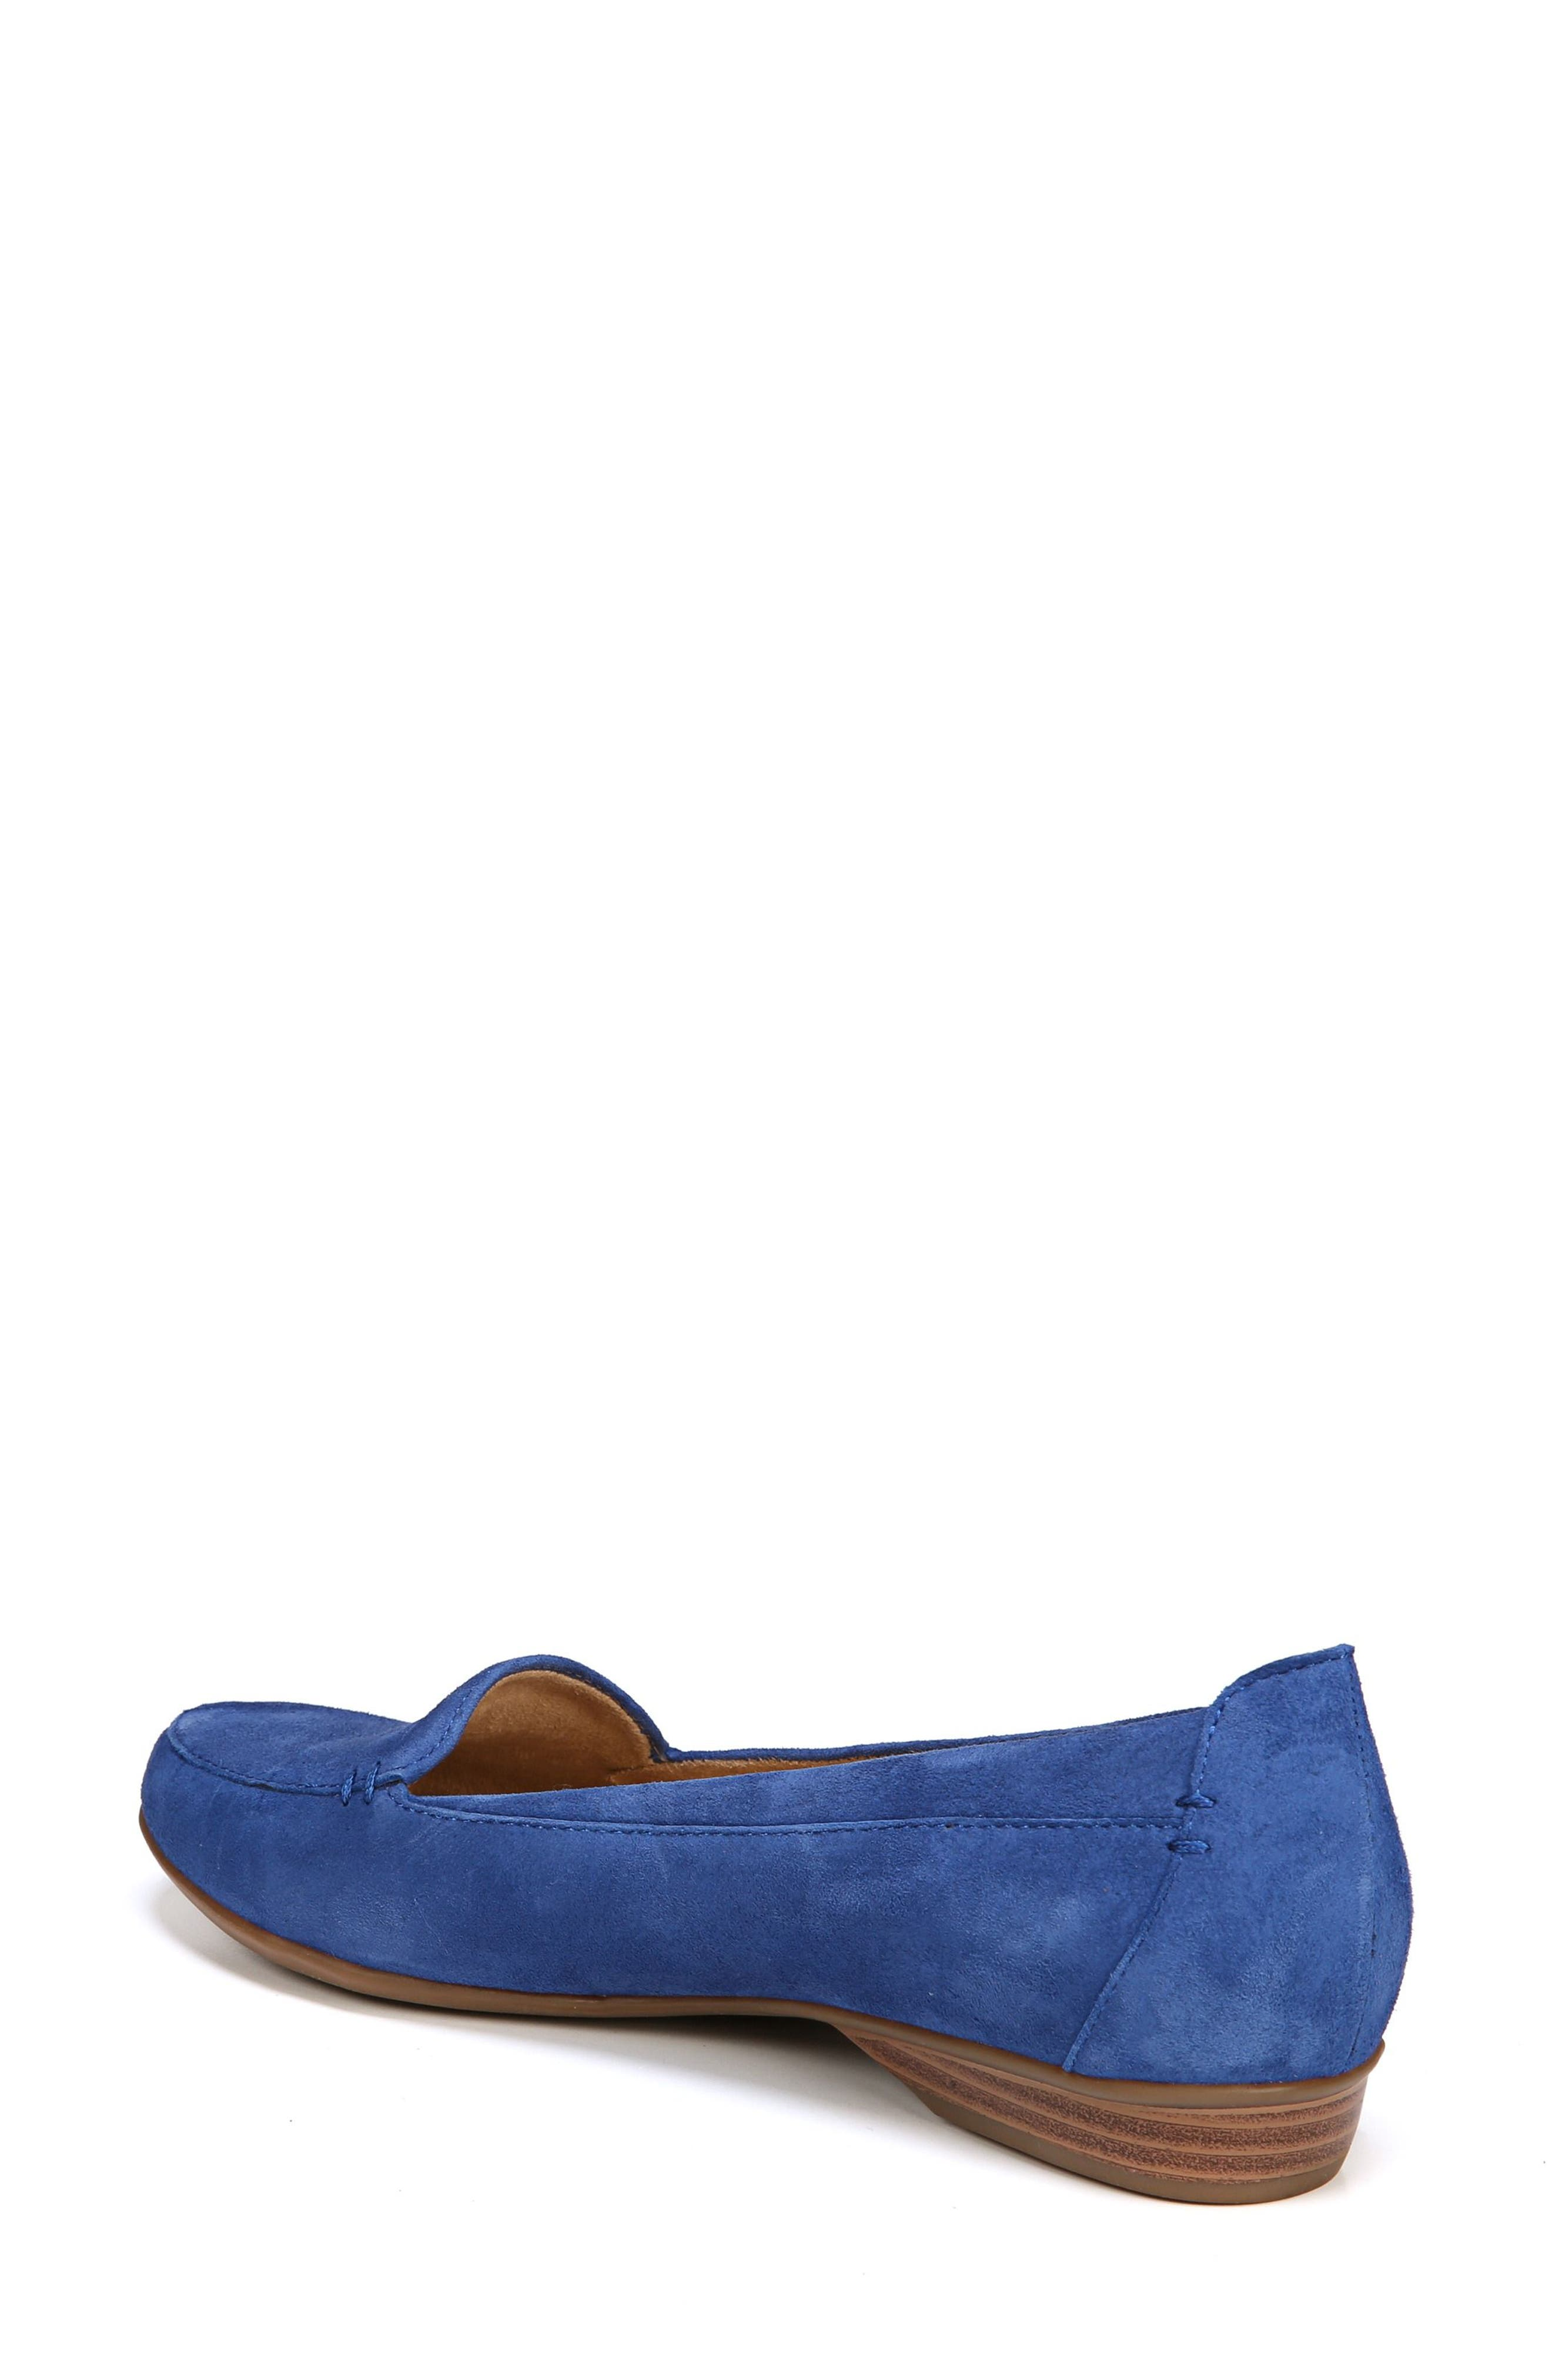 NATURALIZER, 'Saban' Leather Loafer, Alternate thumbnail 2, color, FRENCH BLUE SUEDE